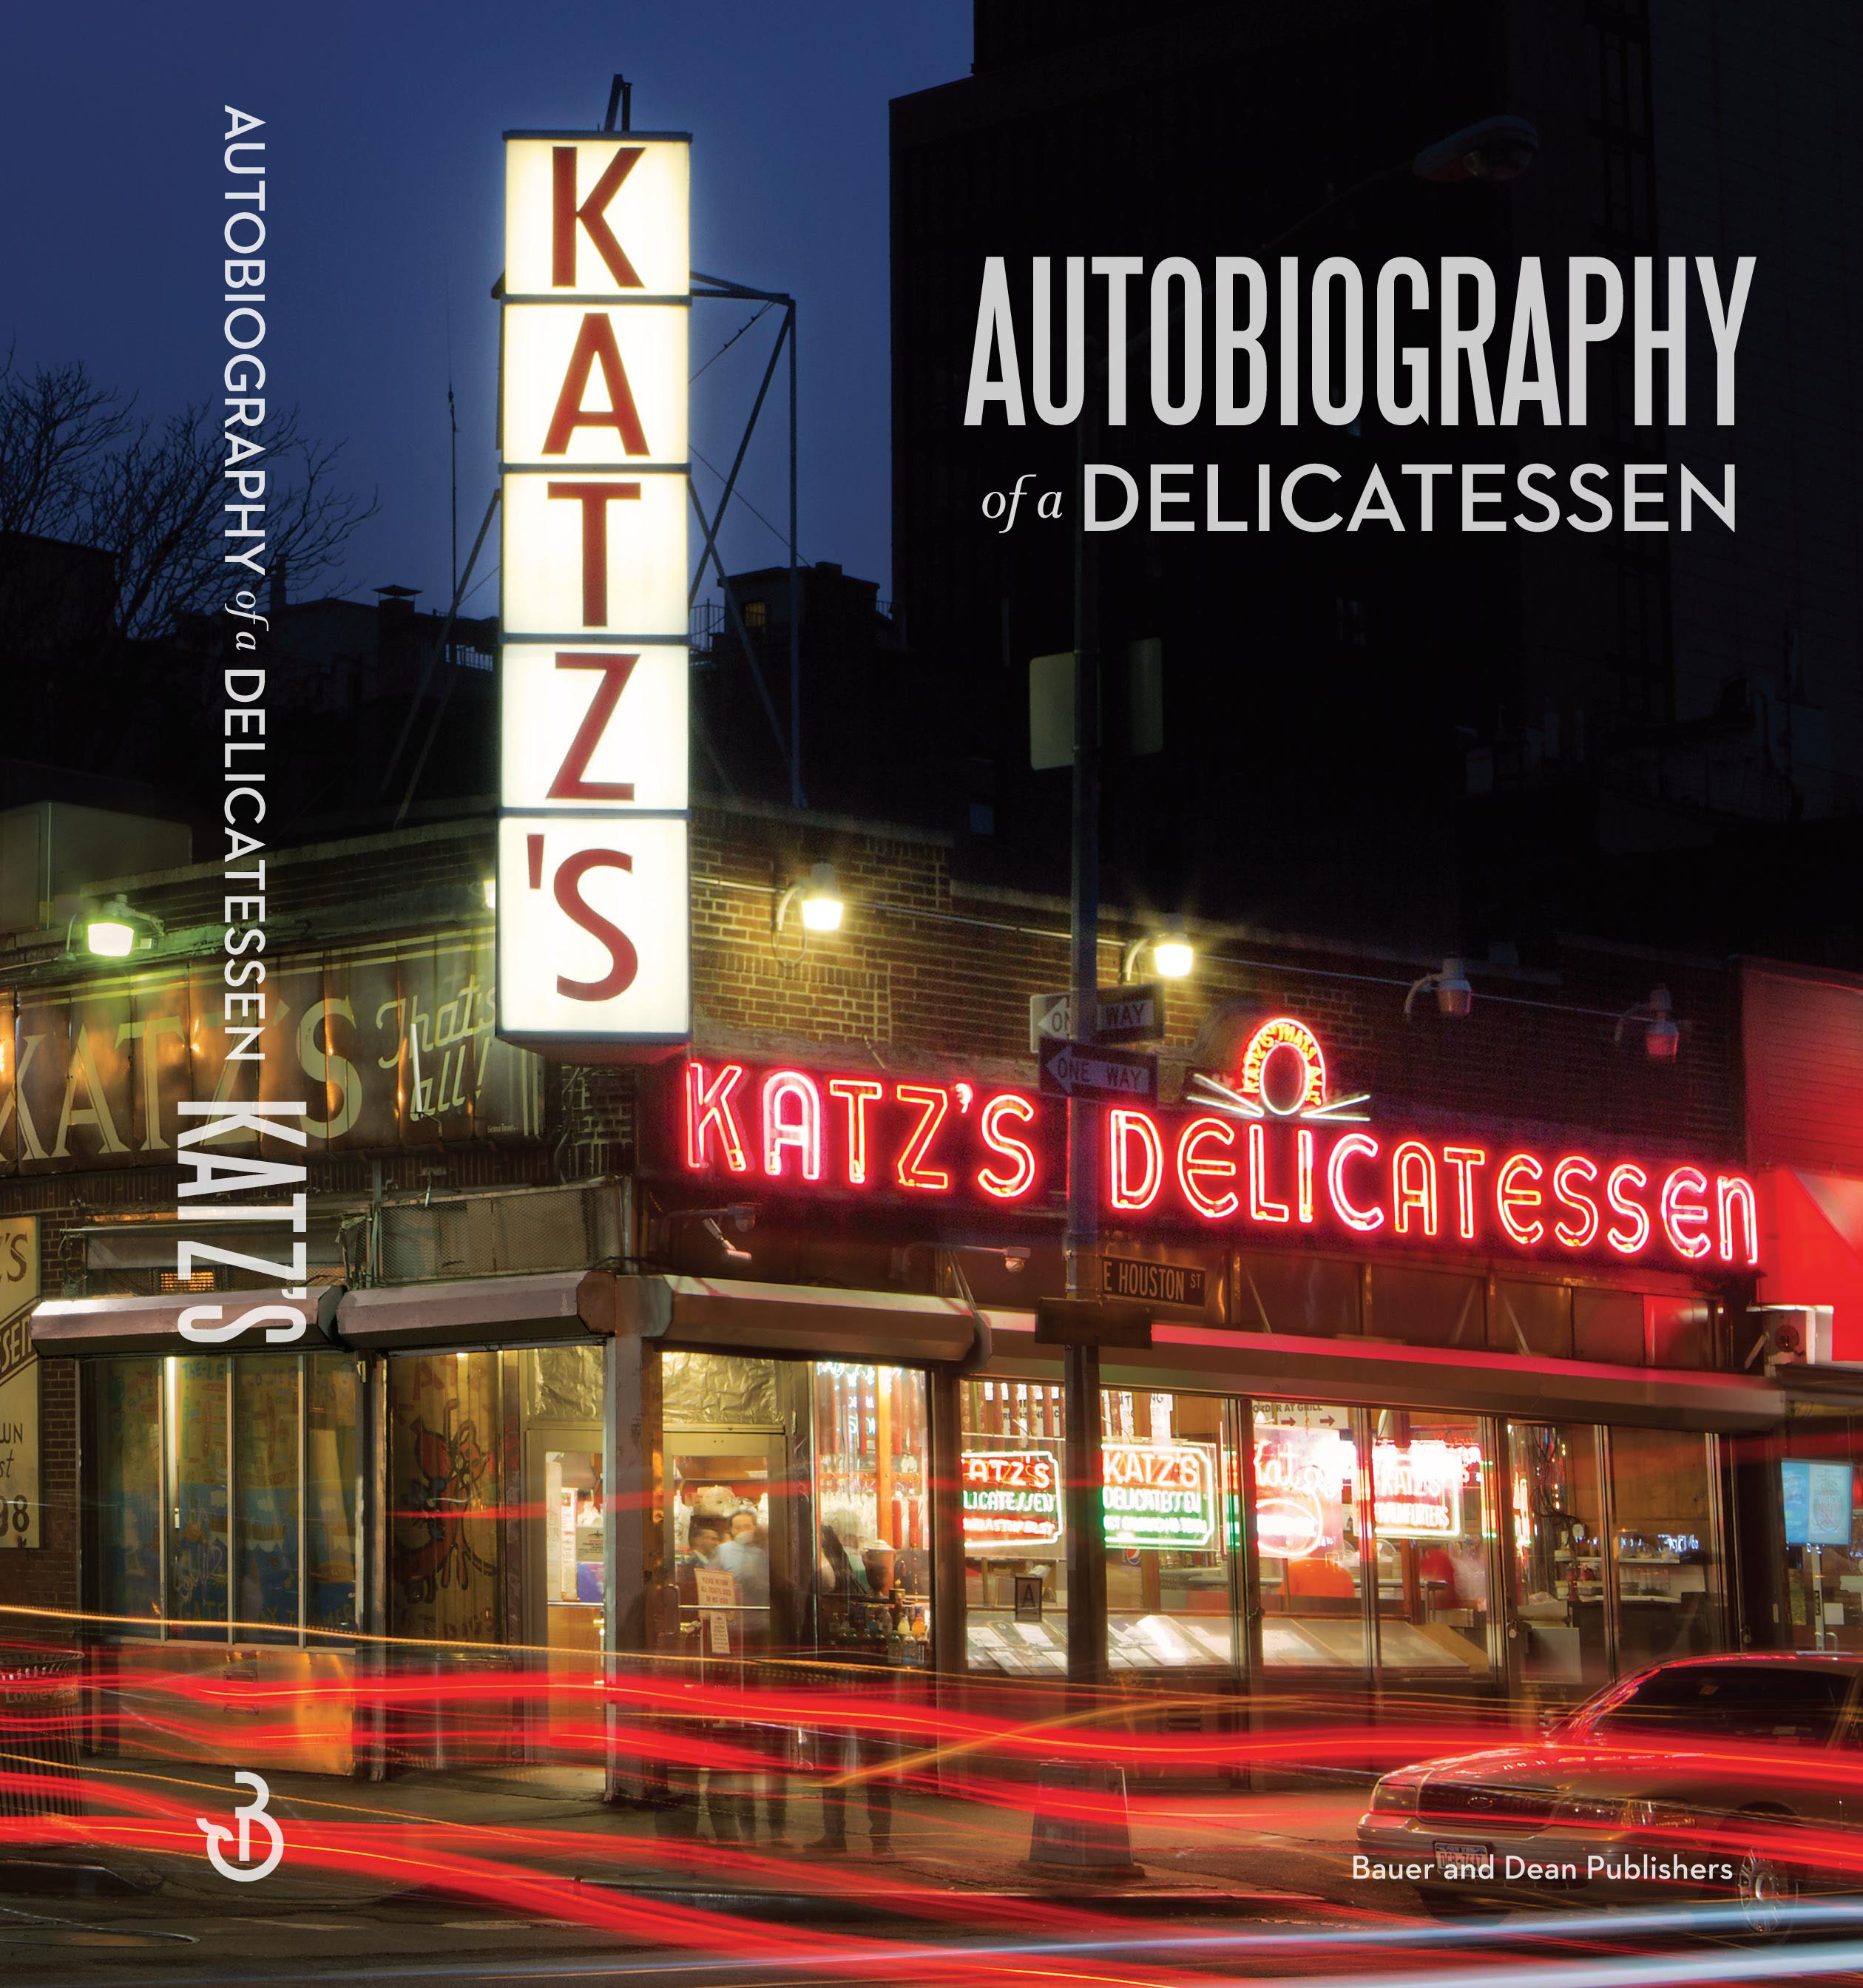 Katzs_cover_final.jpg